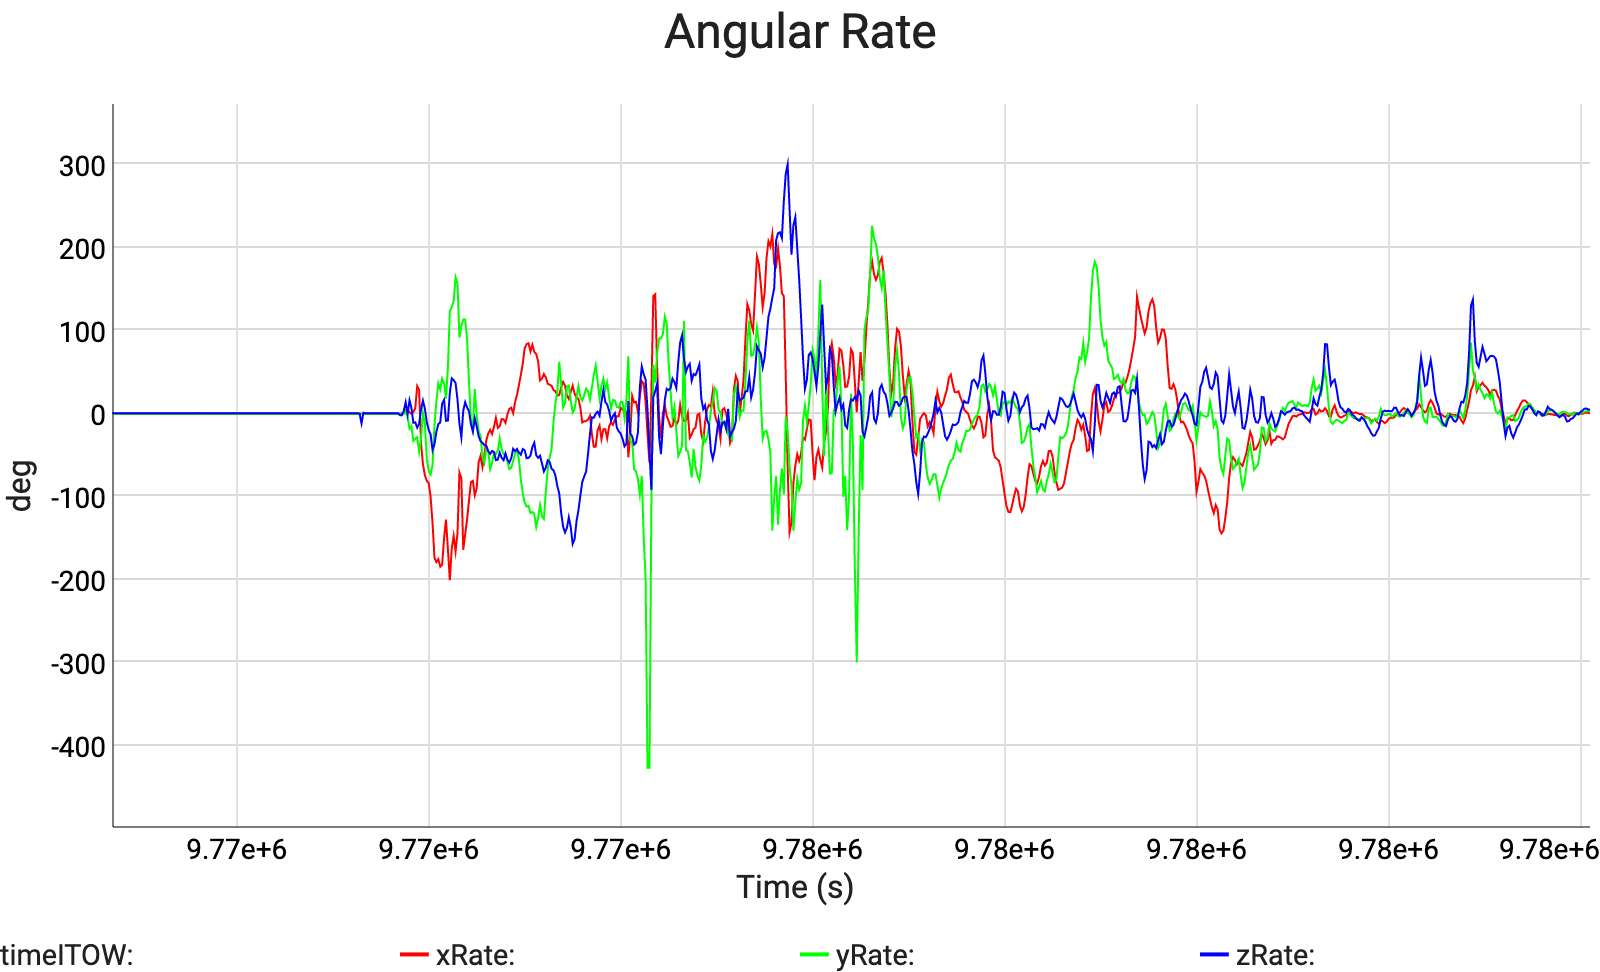 Angular Rate